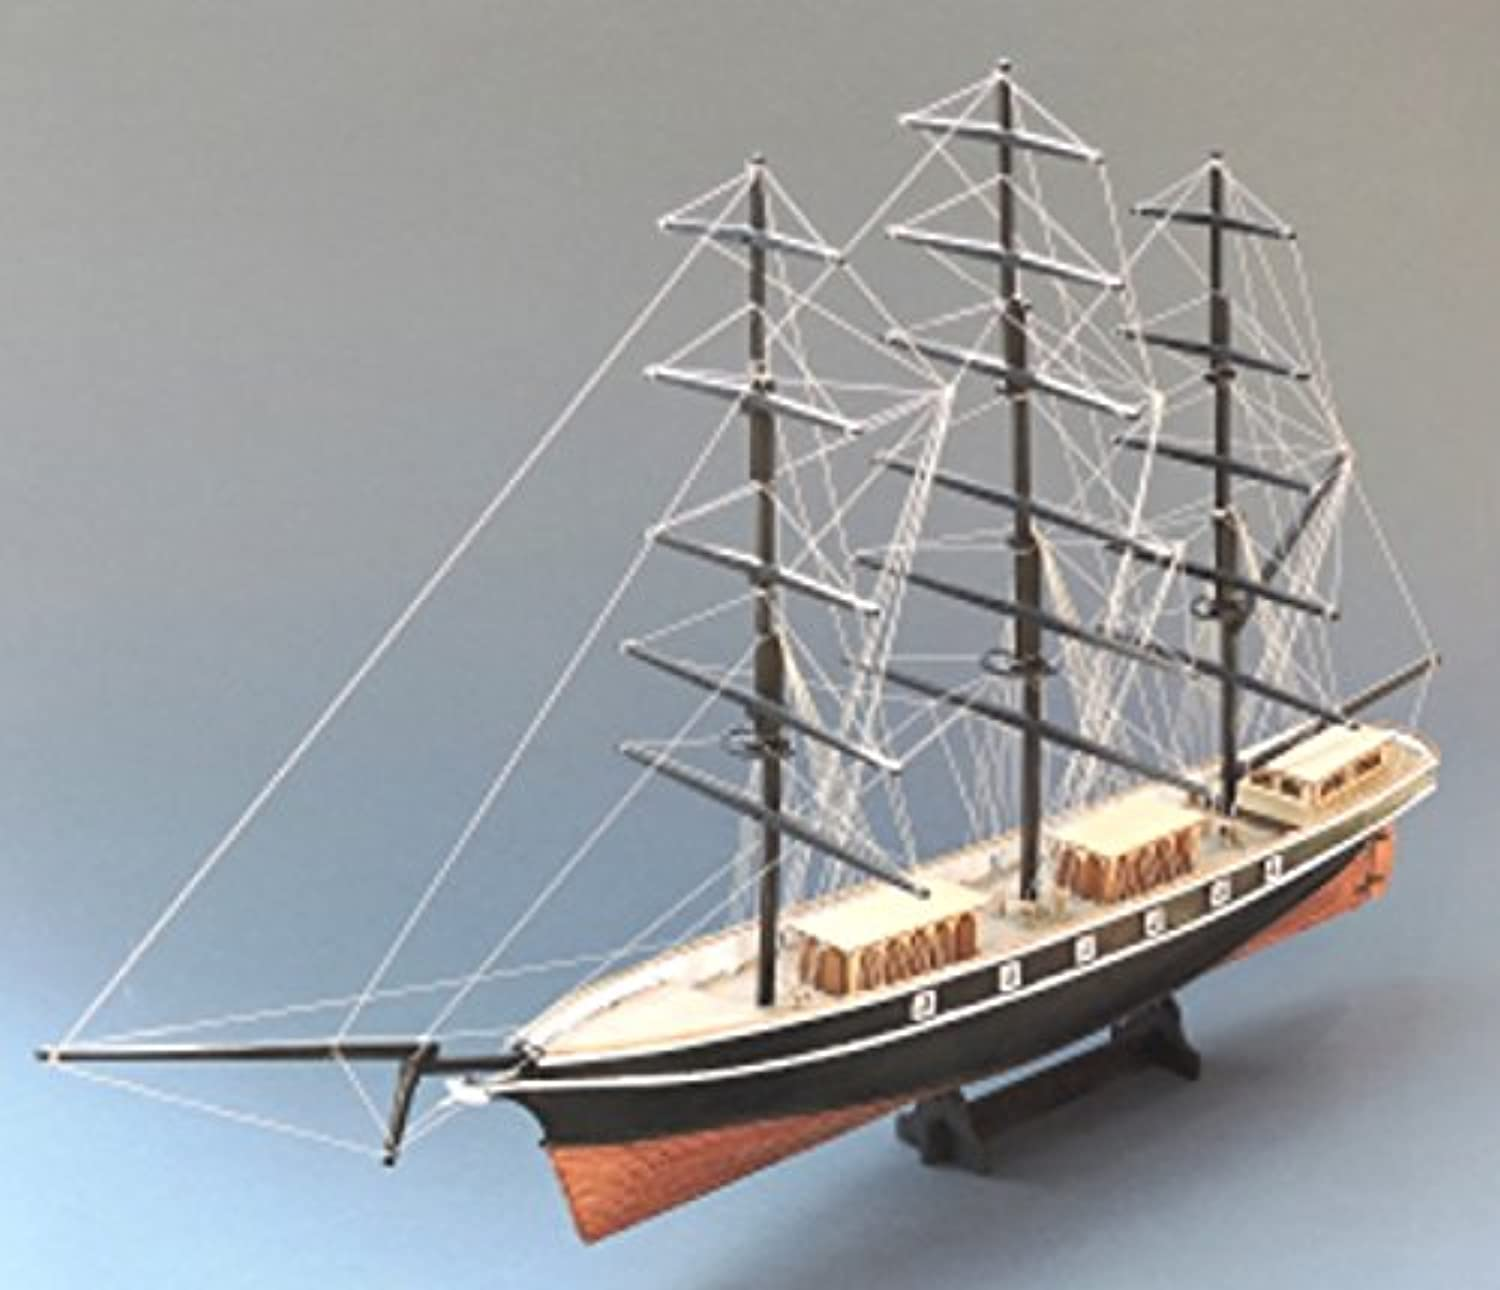 Mantua Models Cutty Sark Kit Ideal for Beginners 1 200th Scale Wooden Model Ship Kit 612